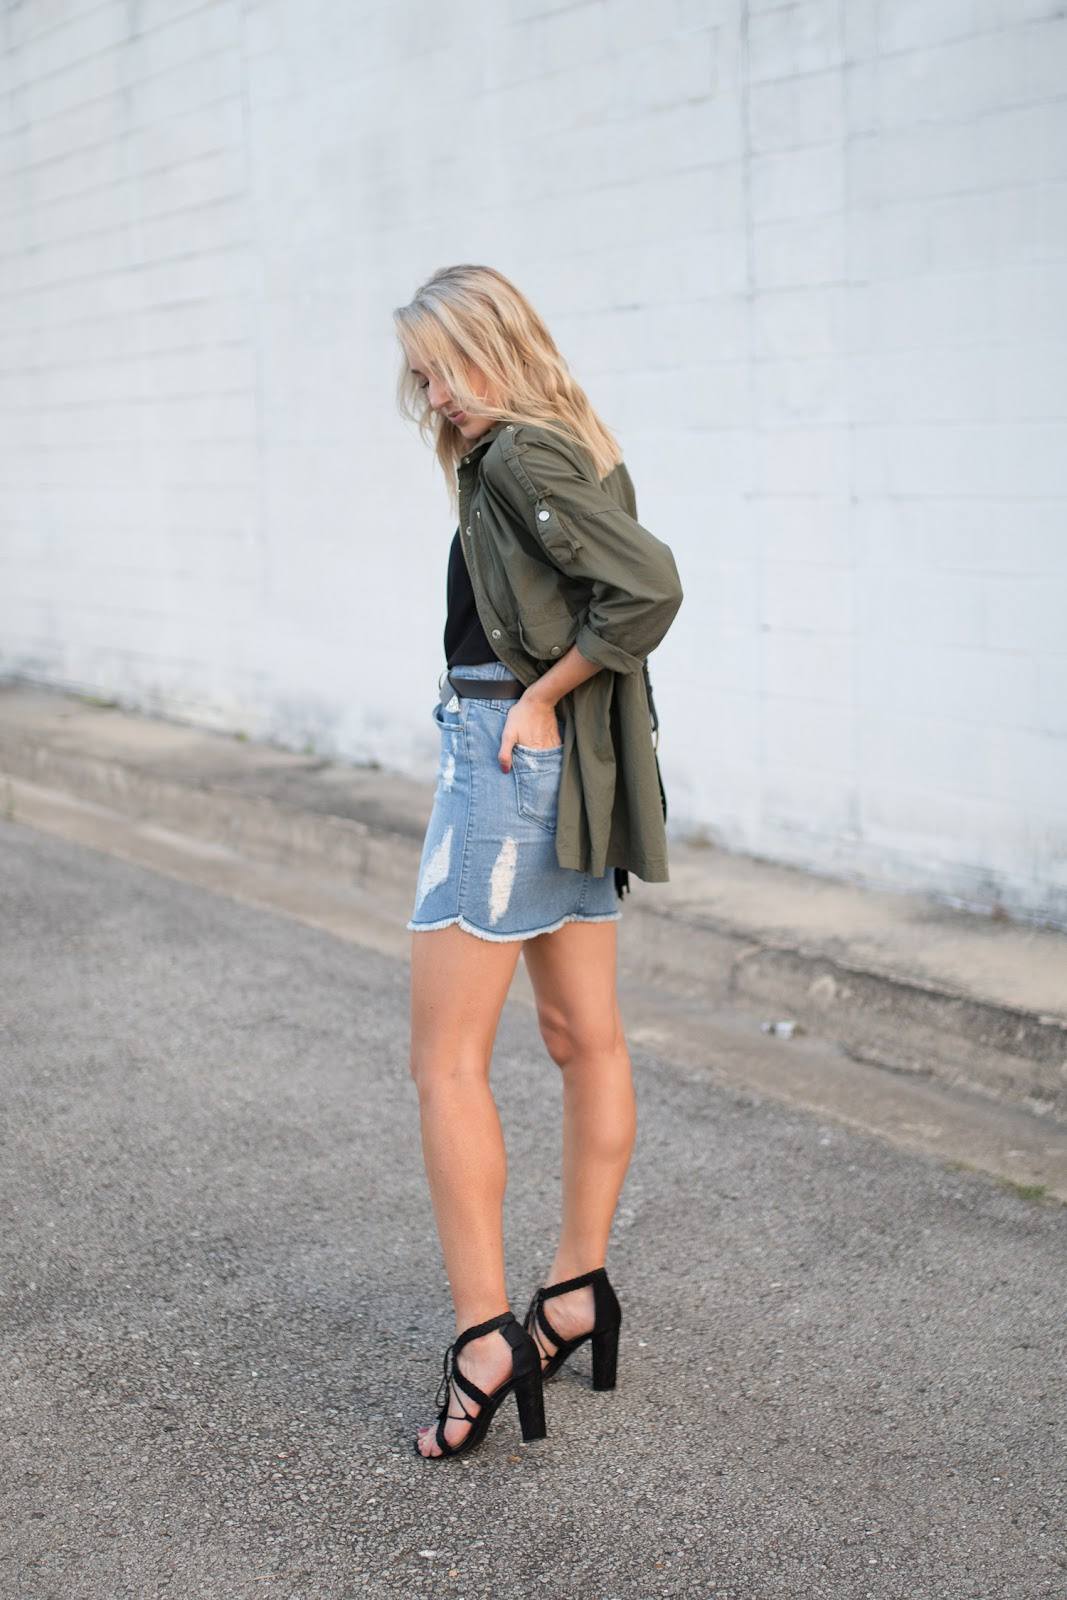 Denim skirt with a utility jacket